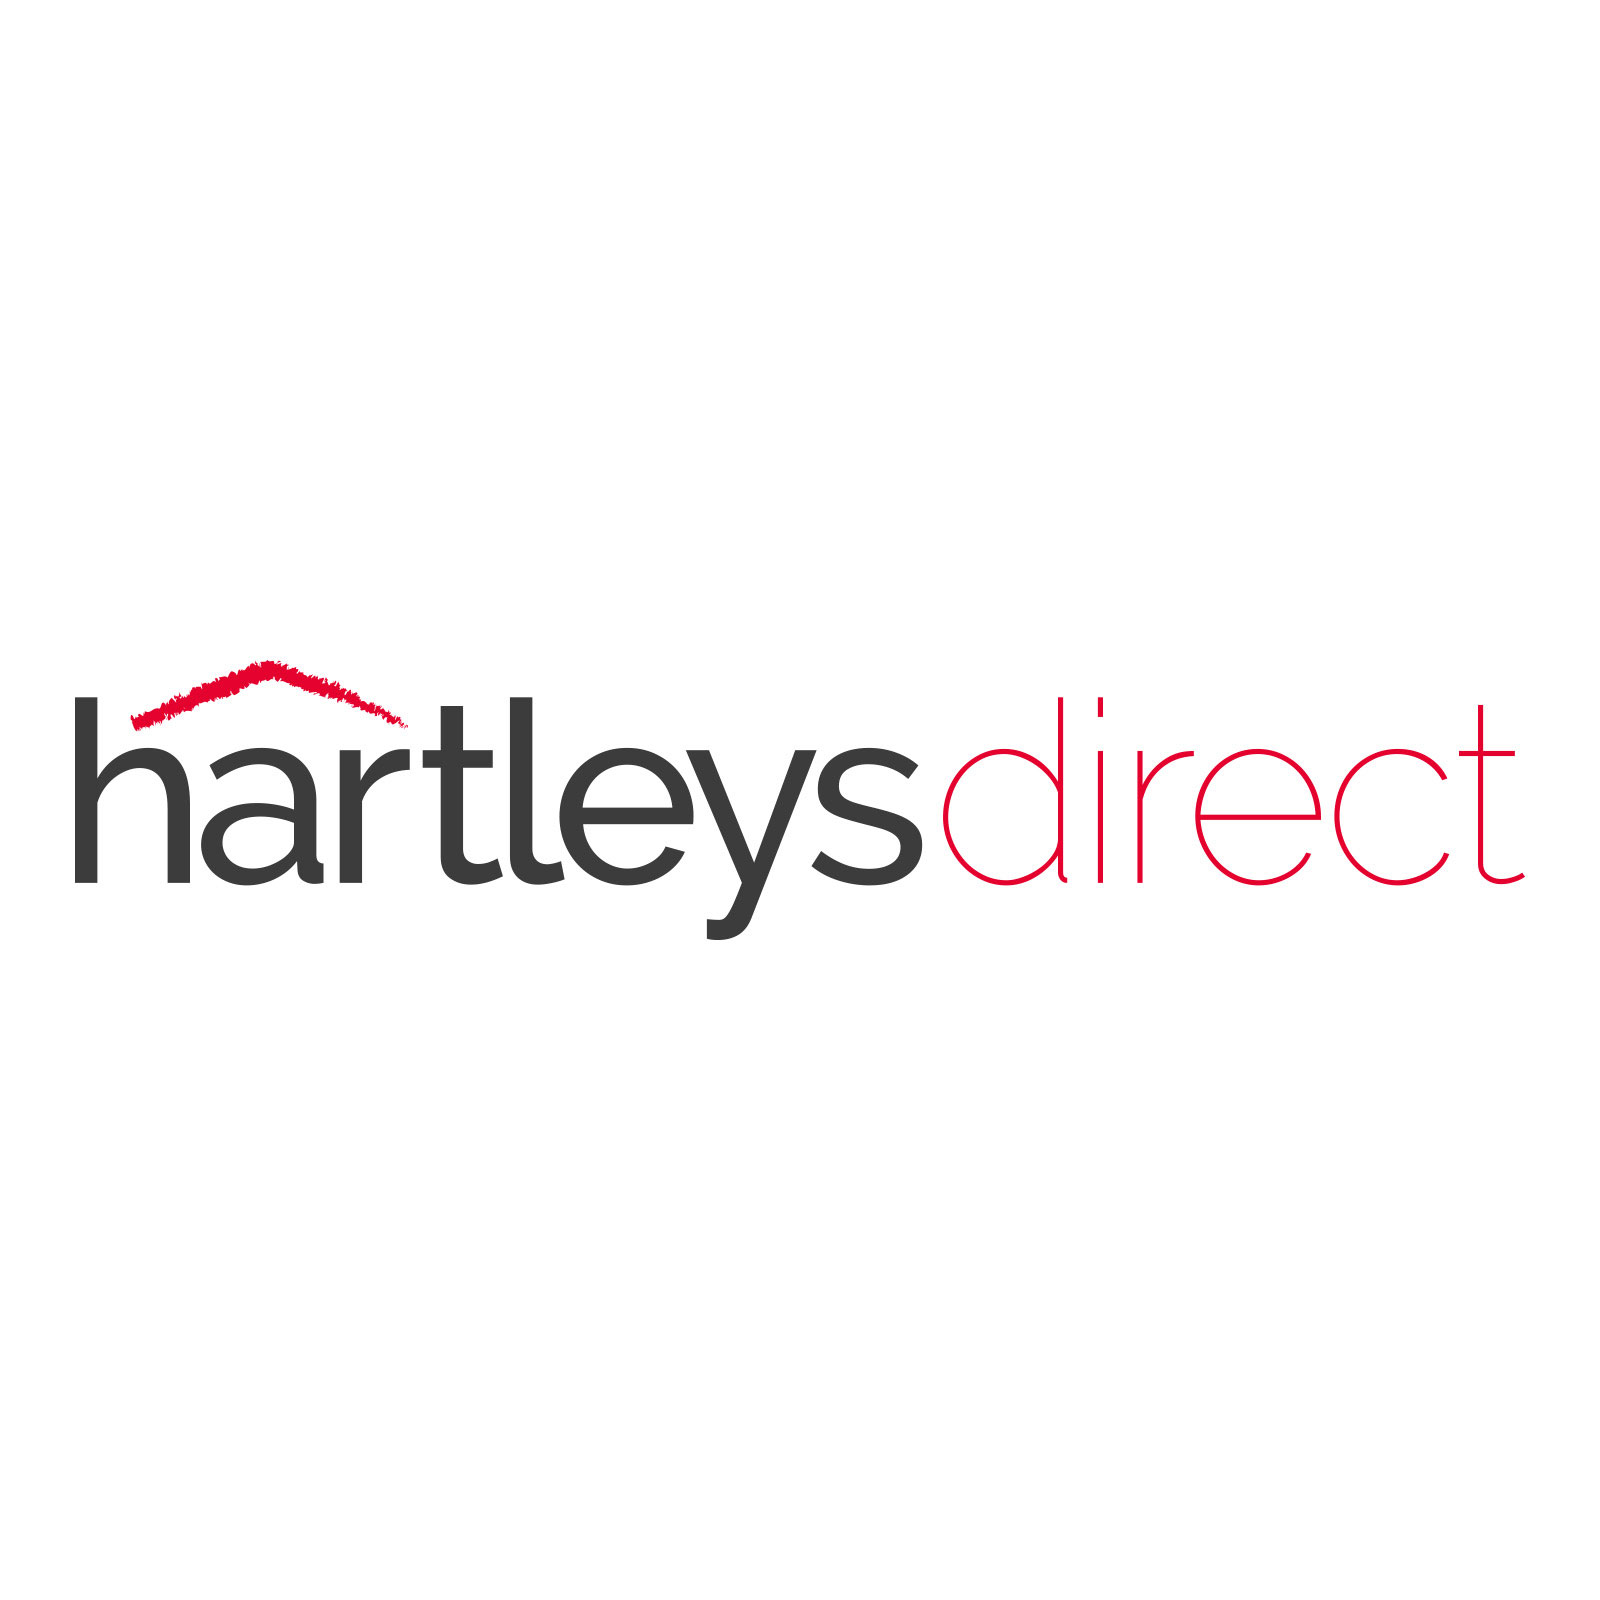 Hartleys-White-6-Cube-Shelving-Unit-with-3-Handled-Box-Drawers-and-Colour-Swatches-on-a-White-Background.jpg